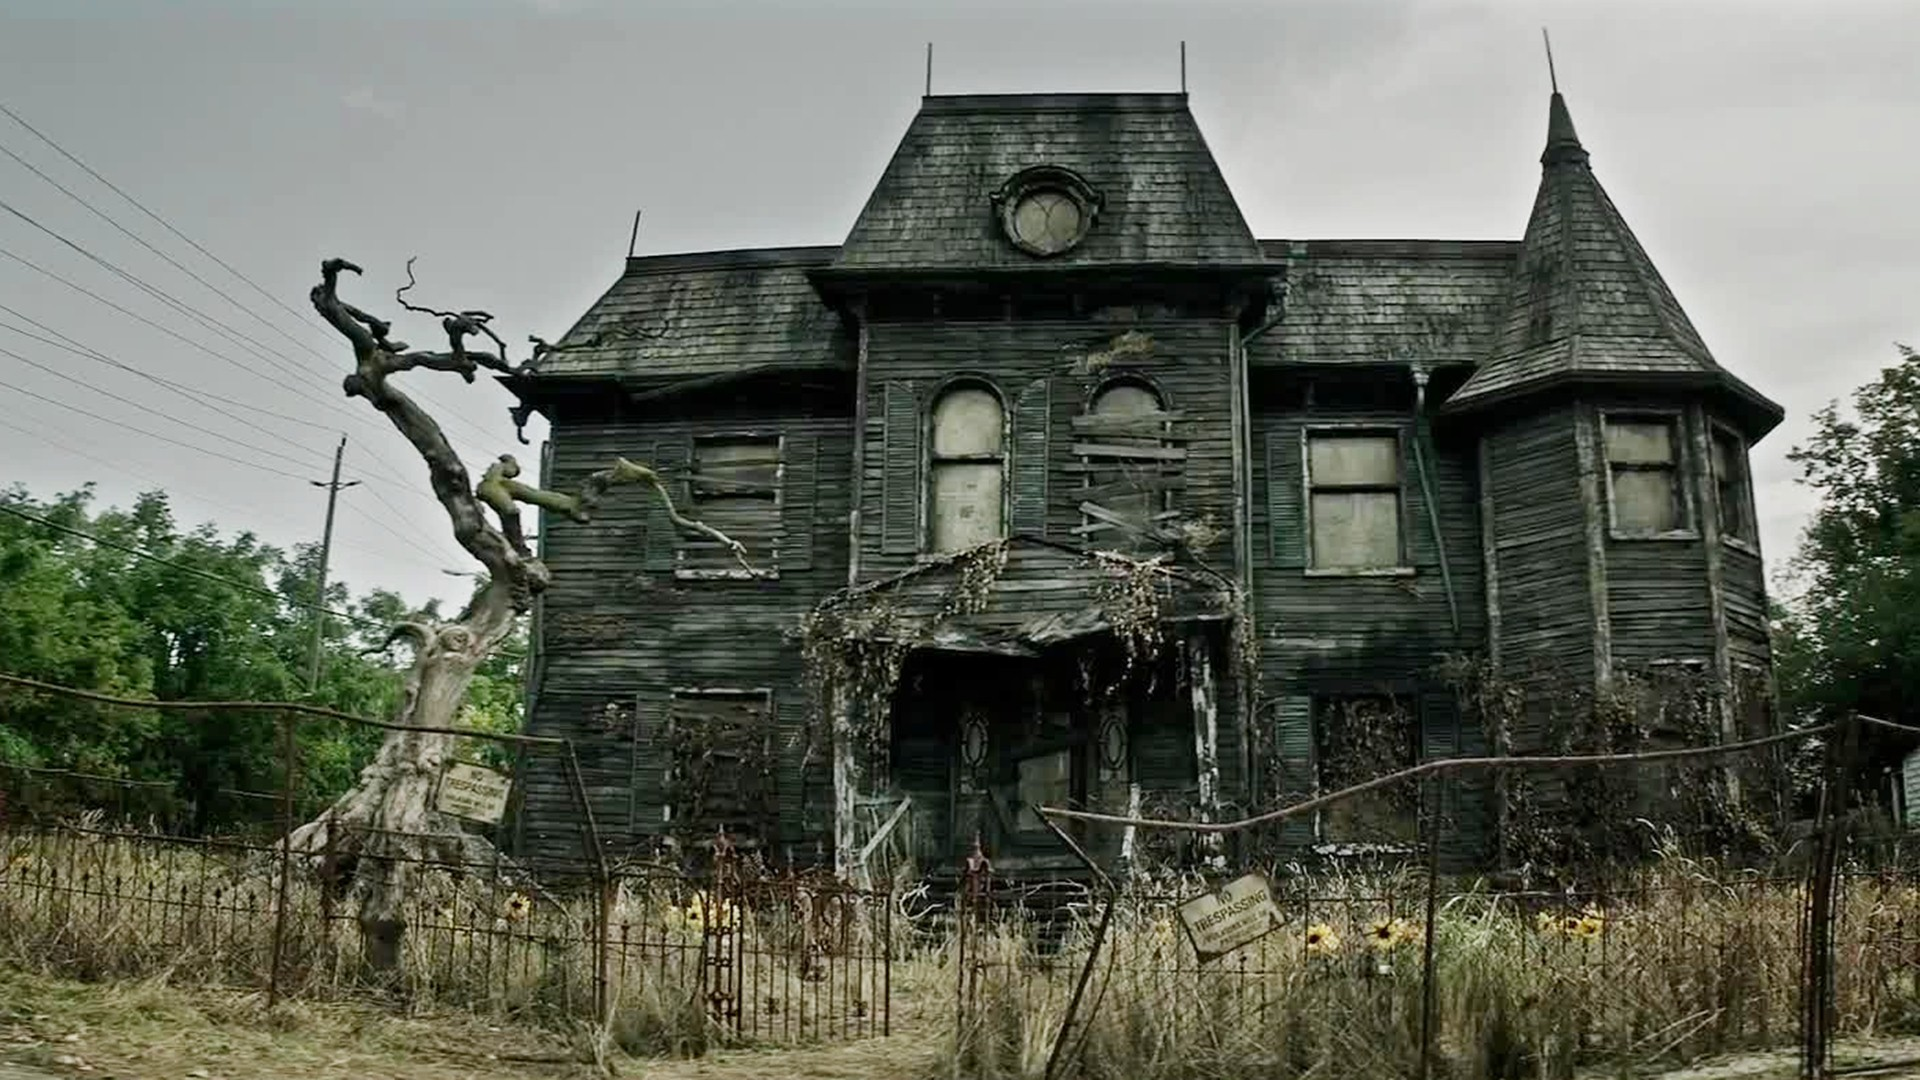 Haunted house wallpapers 62 images for House wallpaper